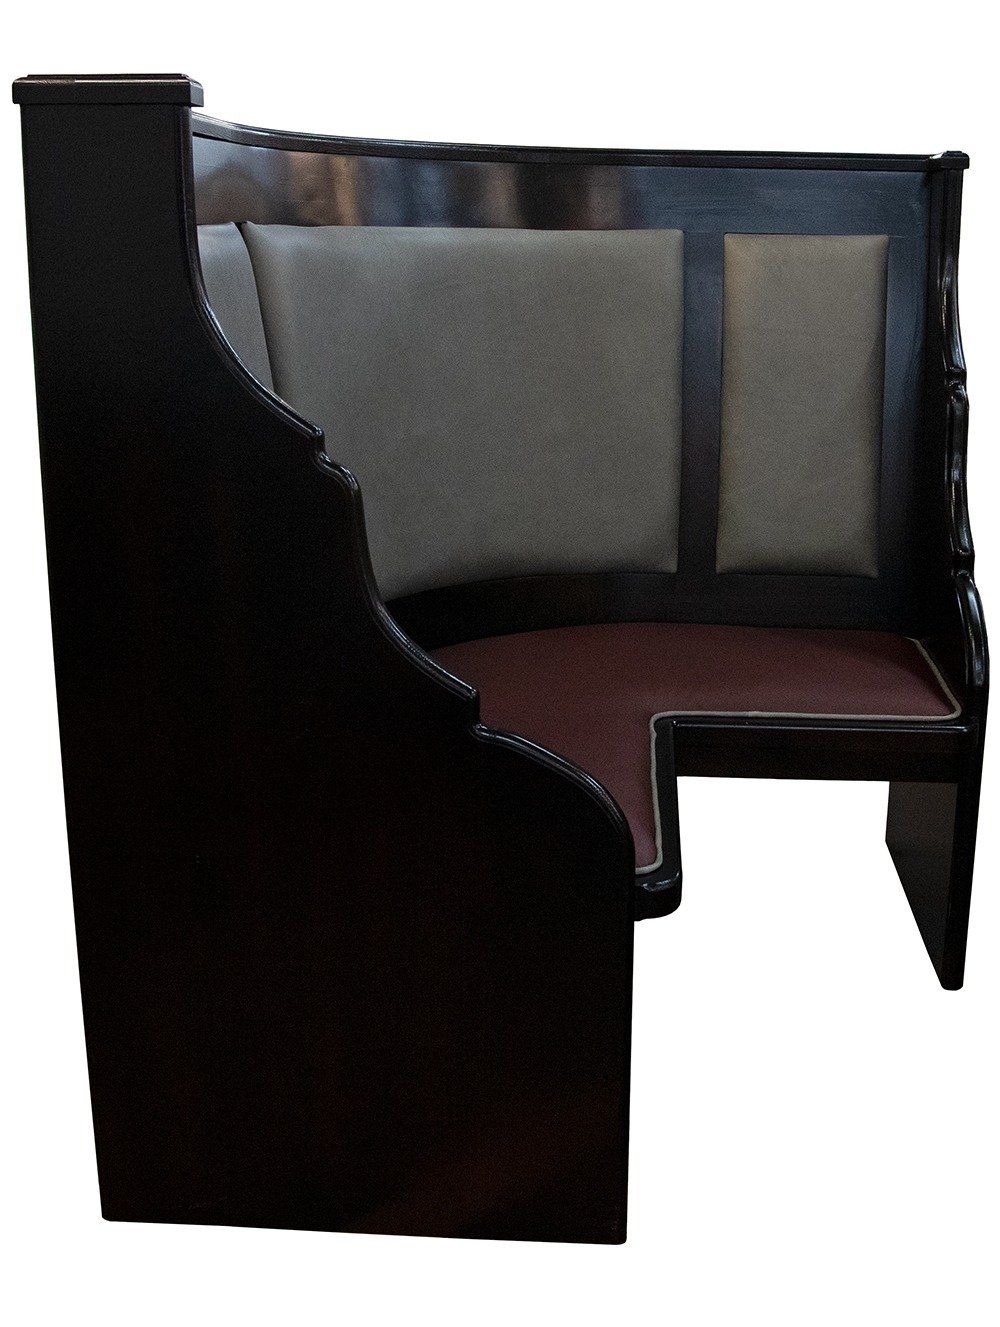 Side image of curved pew